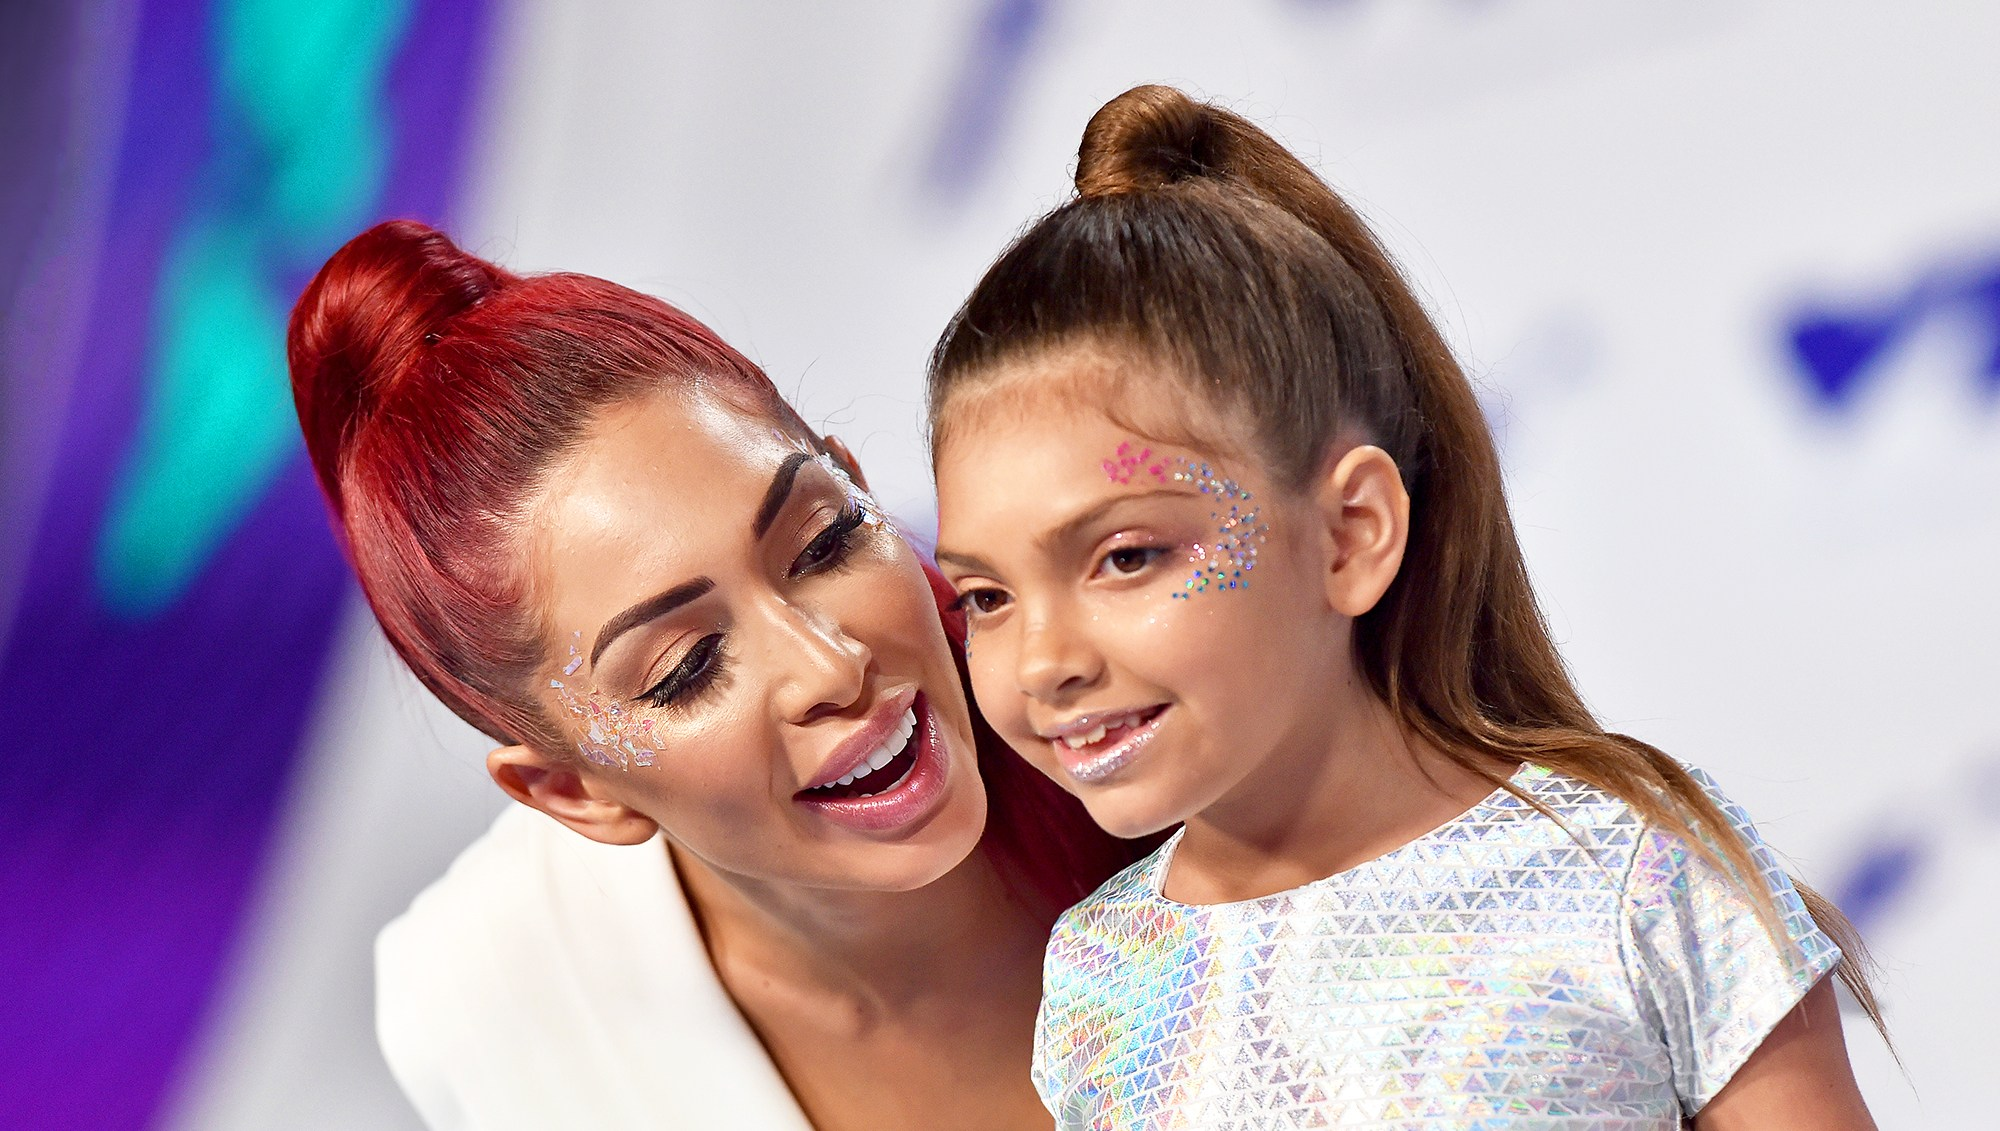 Farrah Abraham and daughter Sophia arrive at the 2017 MTV Video Music Awards at The Forum in Inglewood, California.